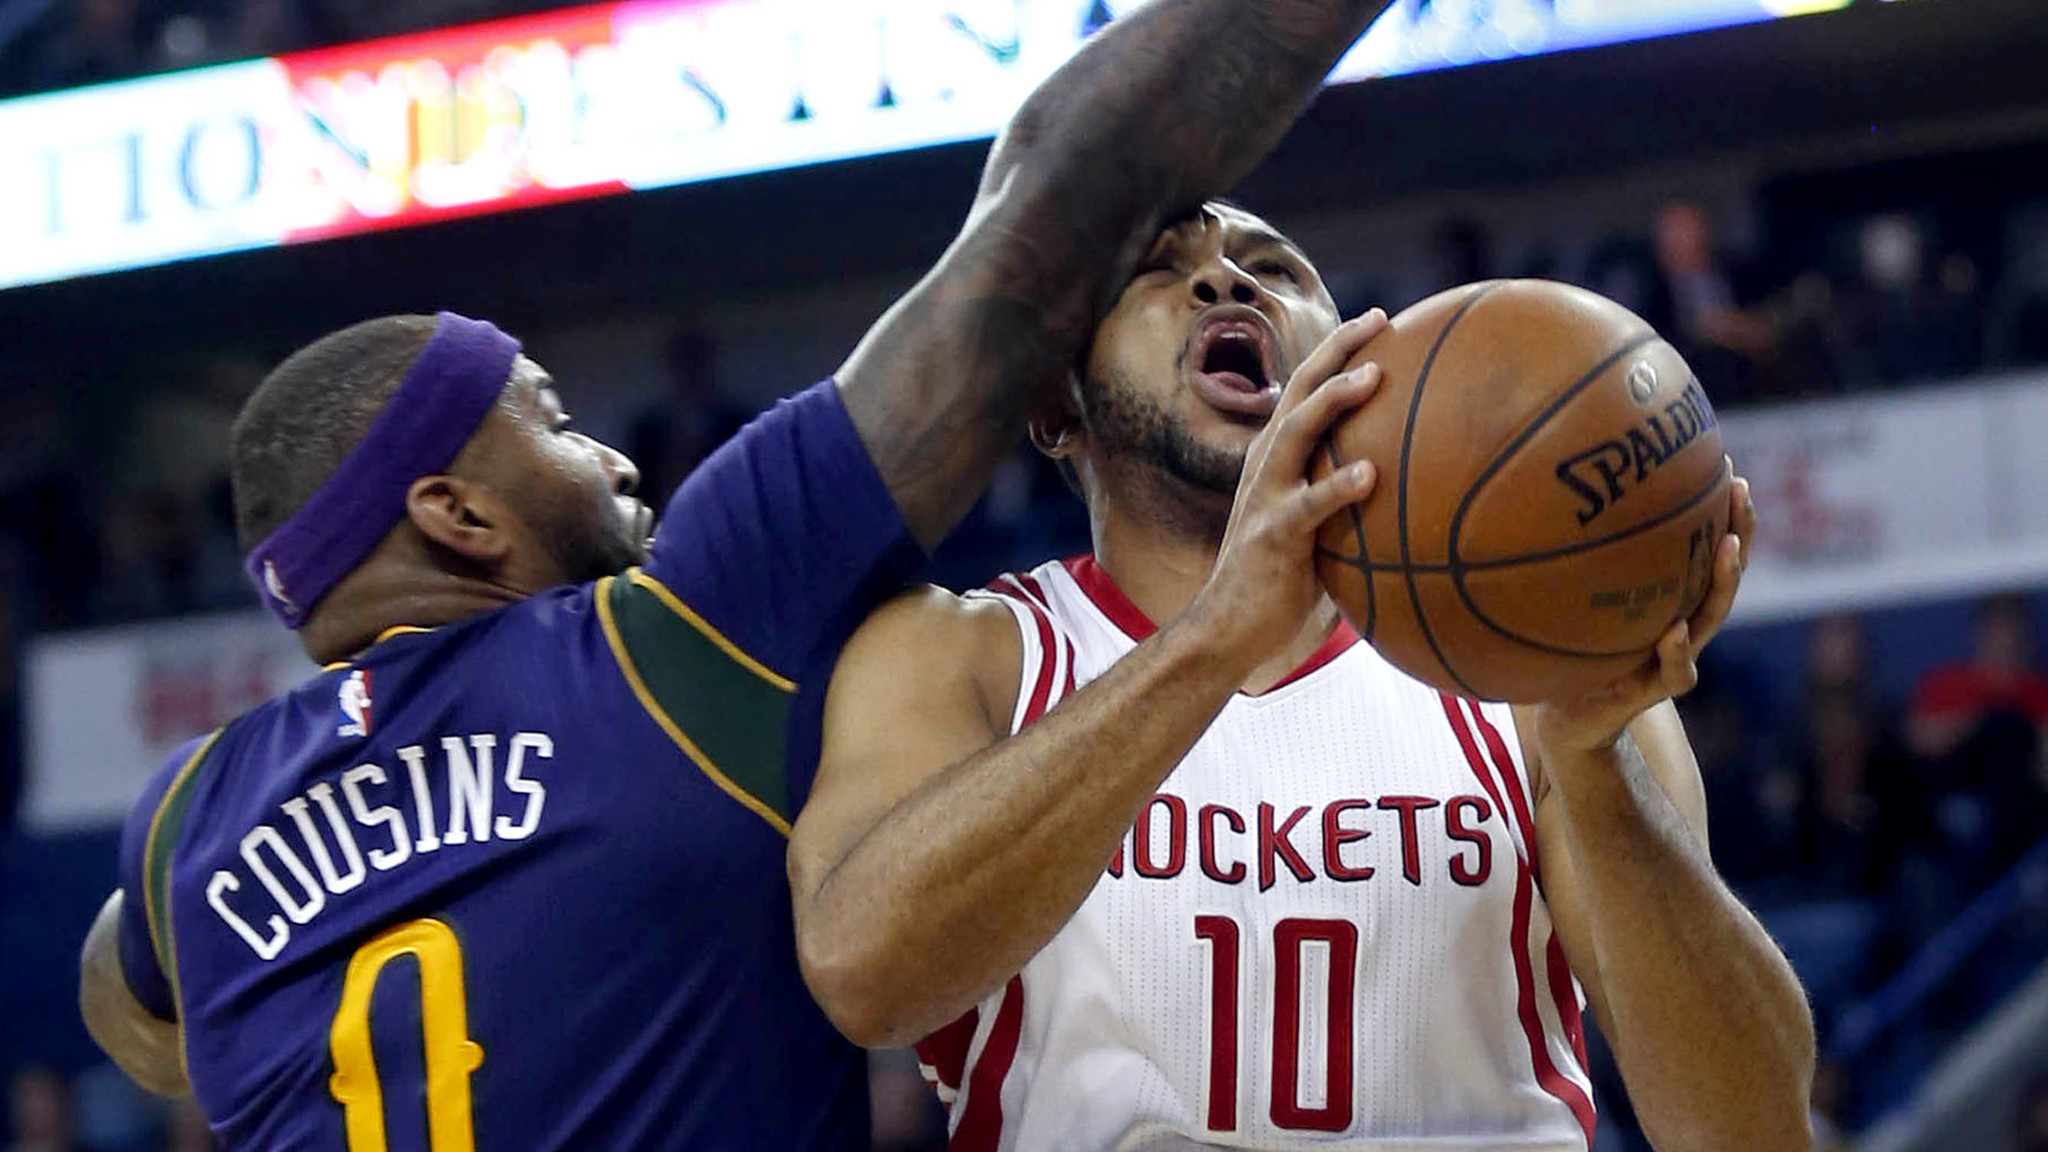 8285b14a042f nola.com NBA roundup  Rockets crush Pelicans in DeMarcus Cousins  debut